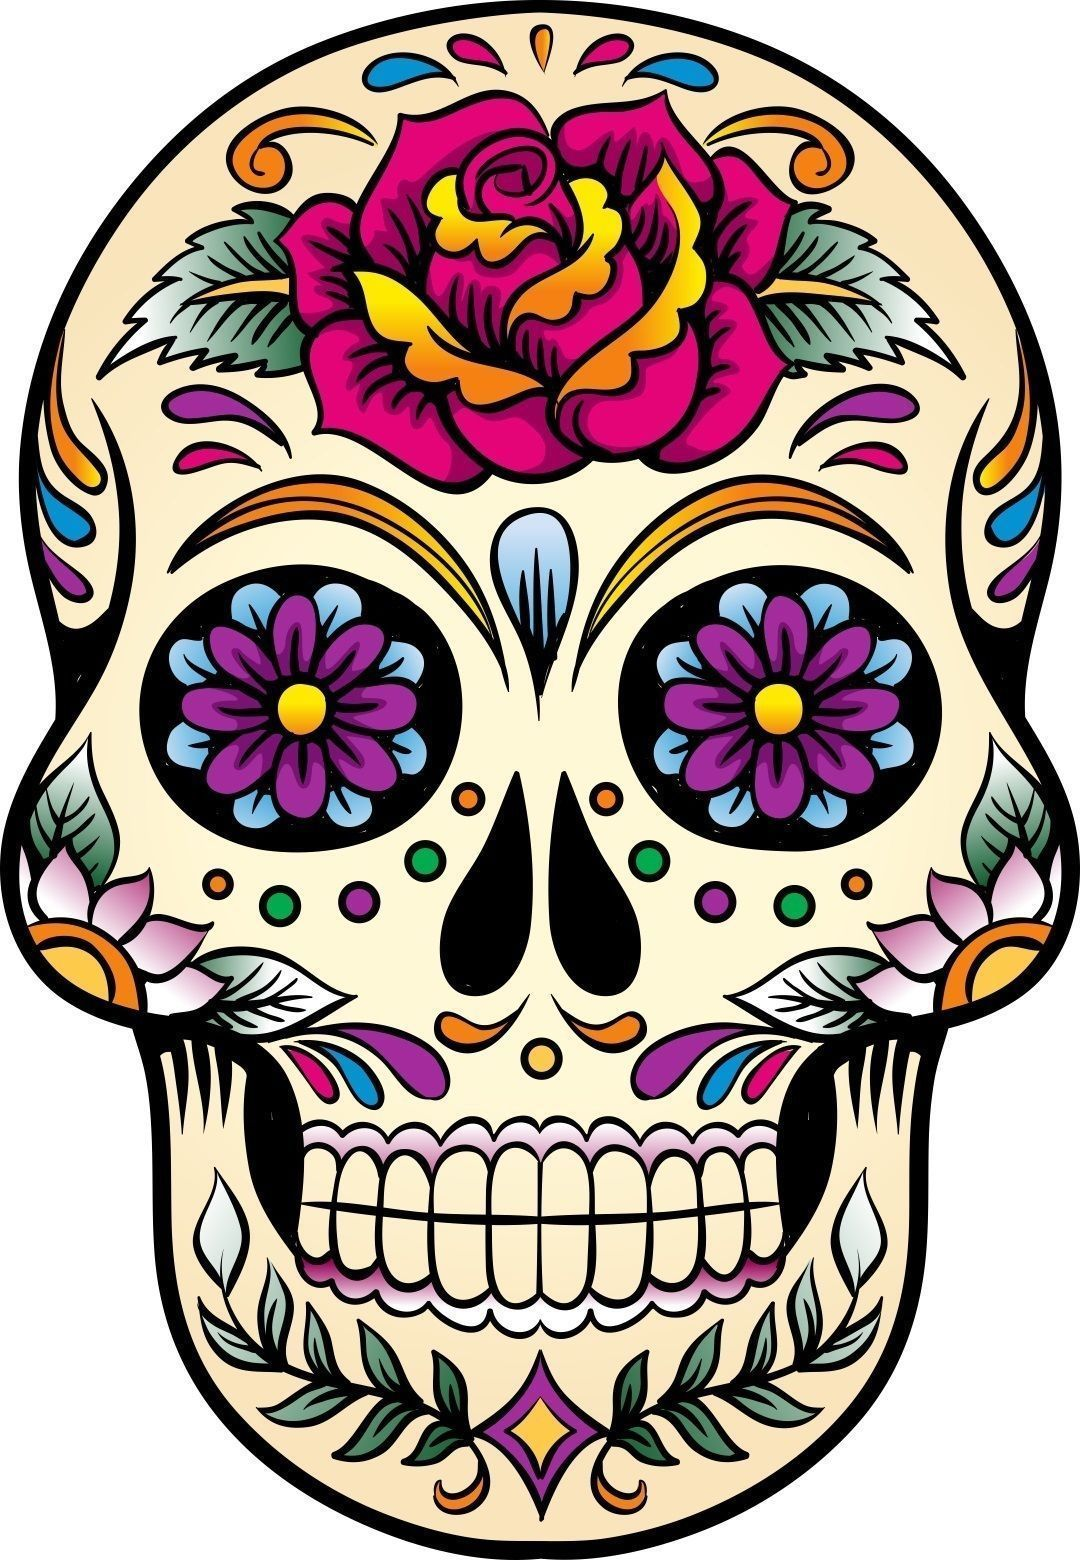 Mexican sugar skull self adhesive vinyl sticker in 2019 print outs skull sugar skull art - Sugar skull images pinterest ...